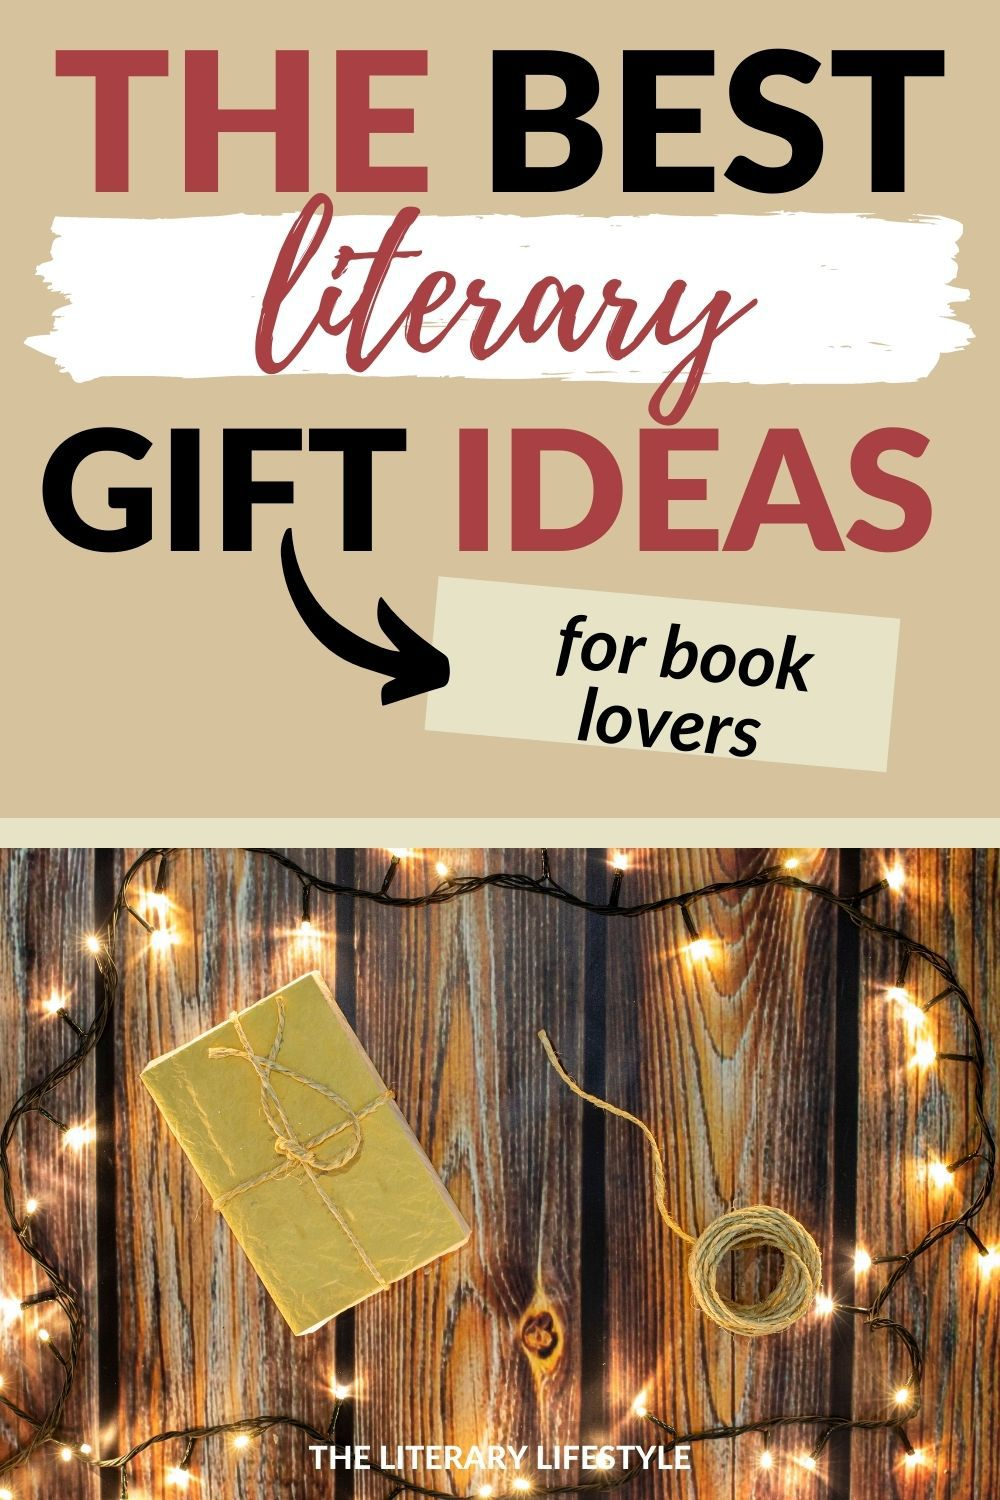 the best literary gift ideas for book lovers